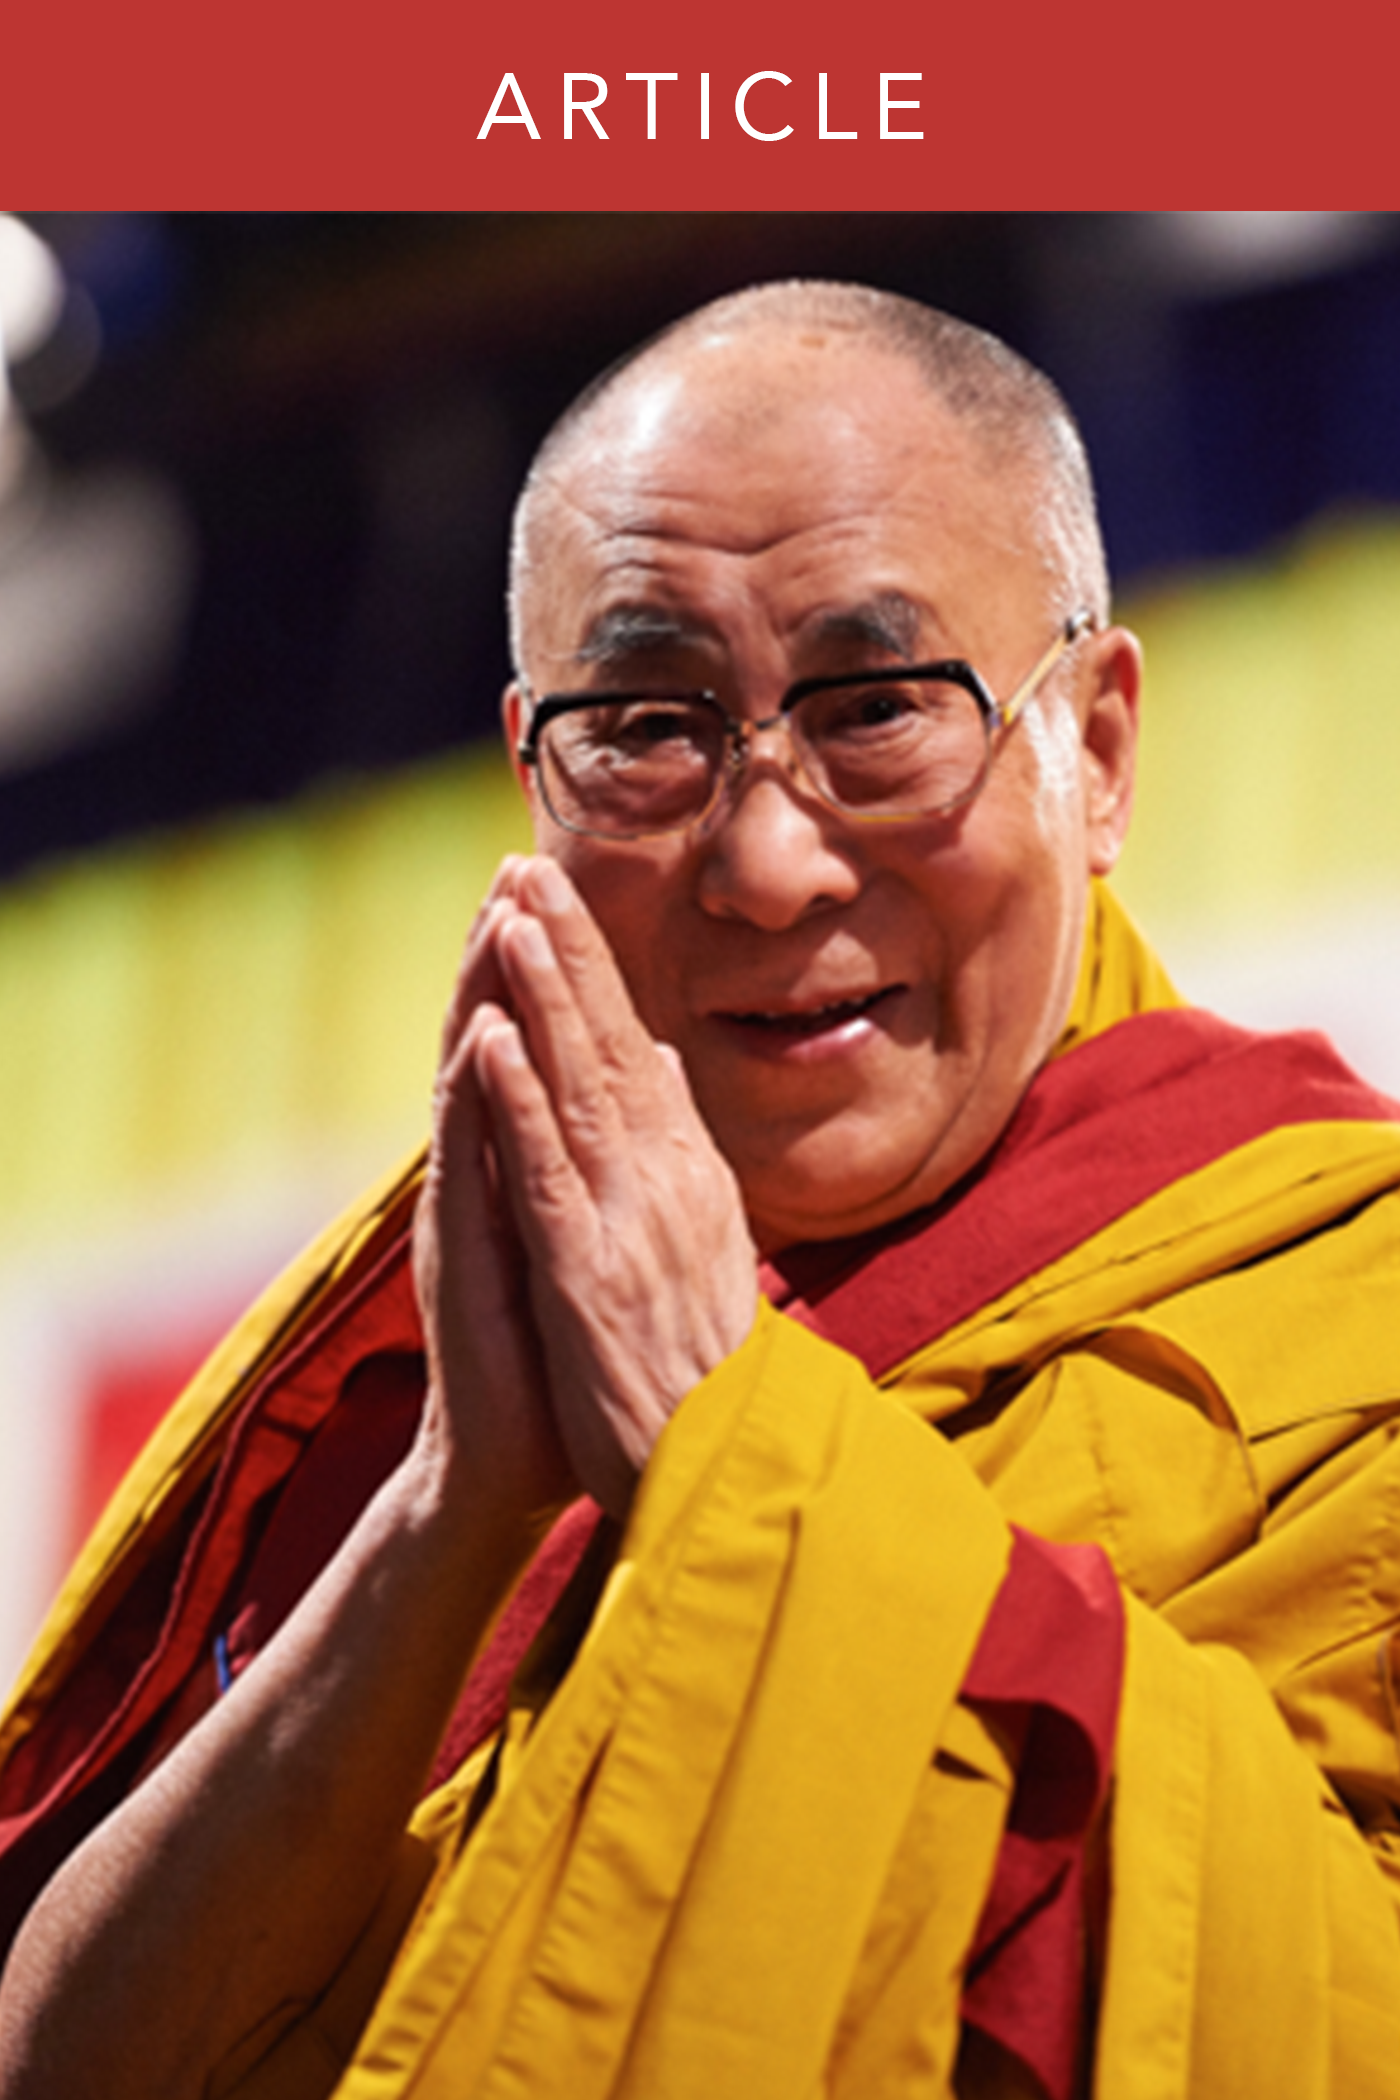 The Dalai Lama Reflects on Faith in Buddhism and Christianity